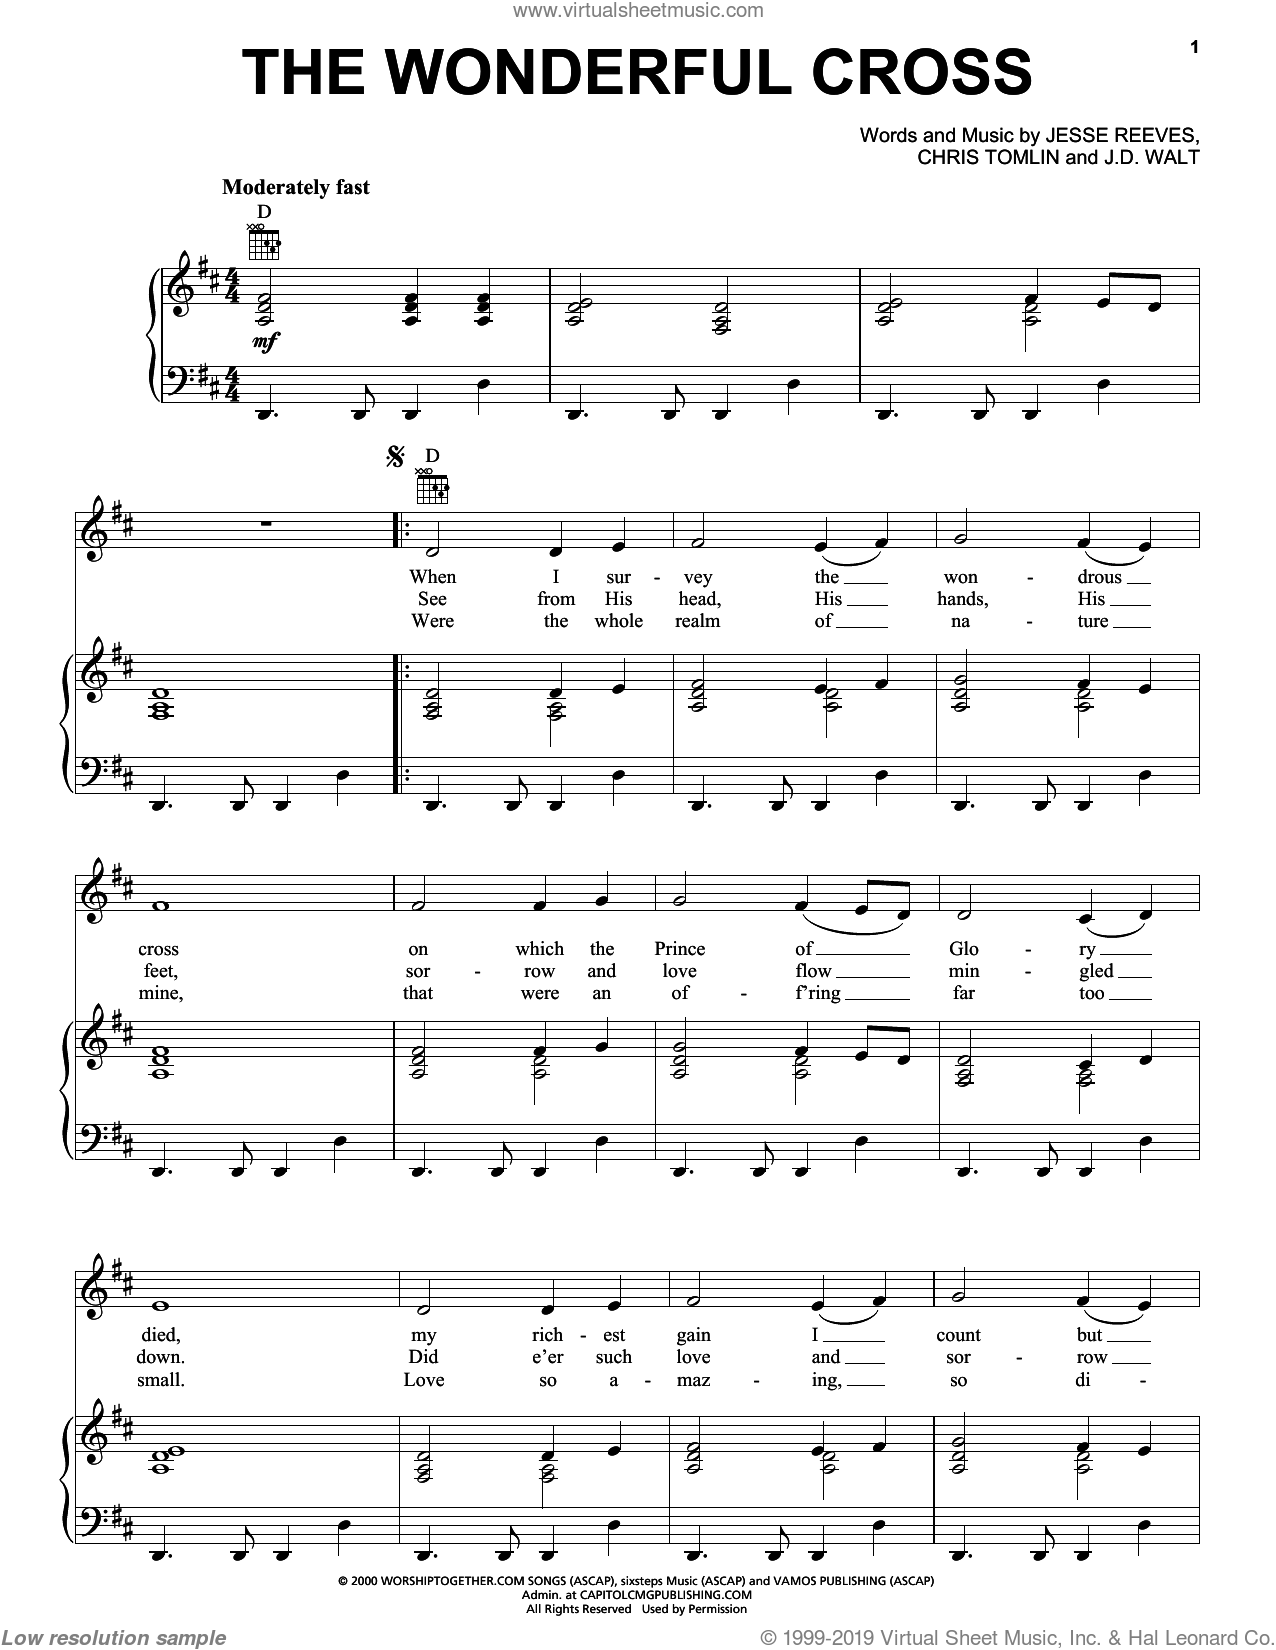 The Wonderful Cross sheet music for voice, piano or guitar by Chris Tomlin, Phillips, Craig & Dean, J.D. Walt and Jesse Reeves, intermediate skill level